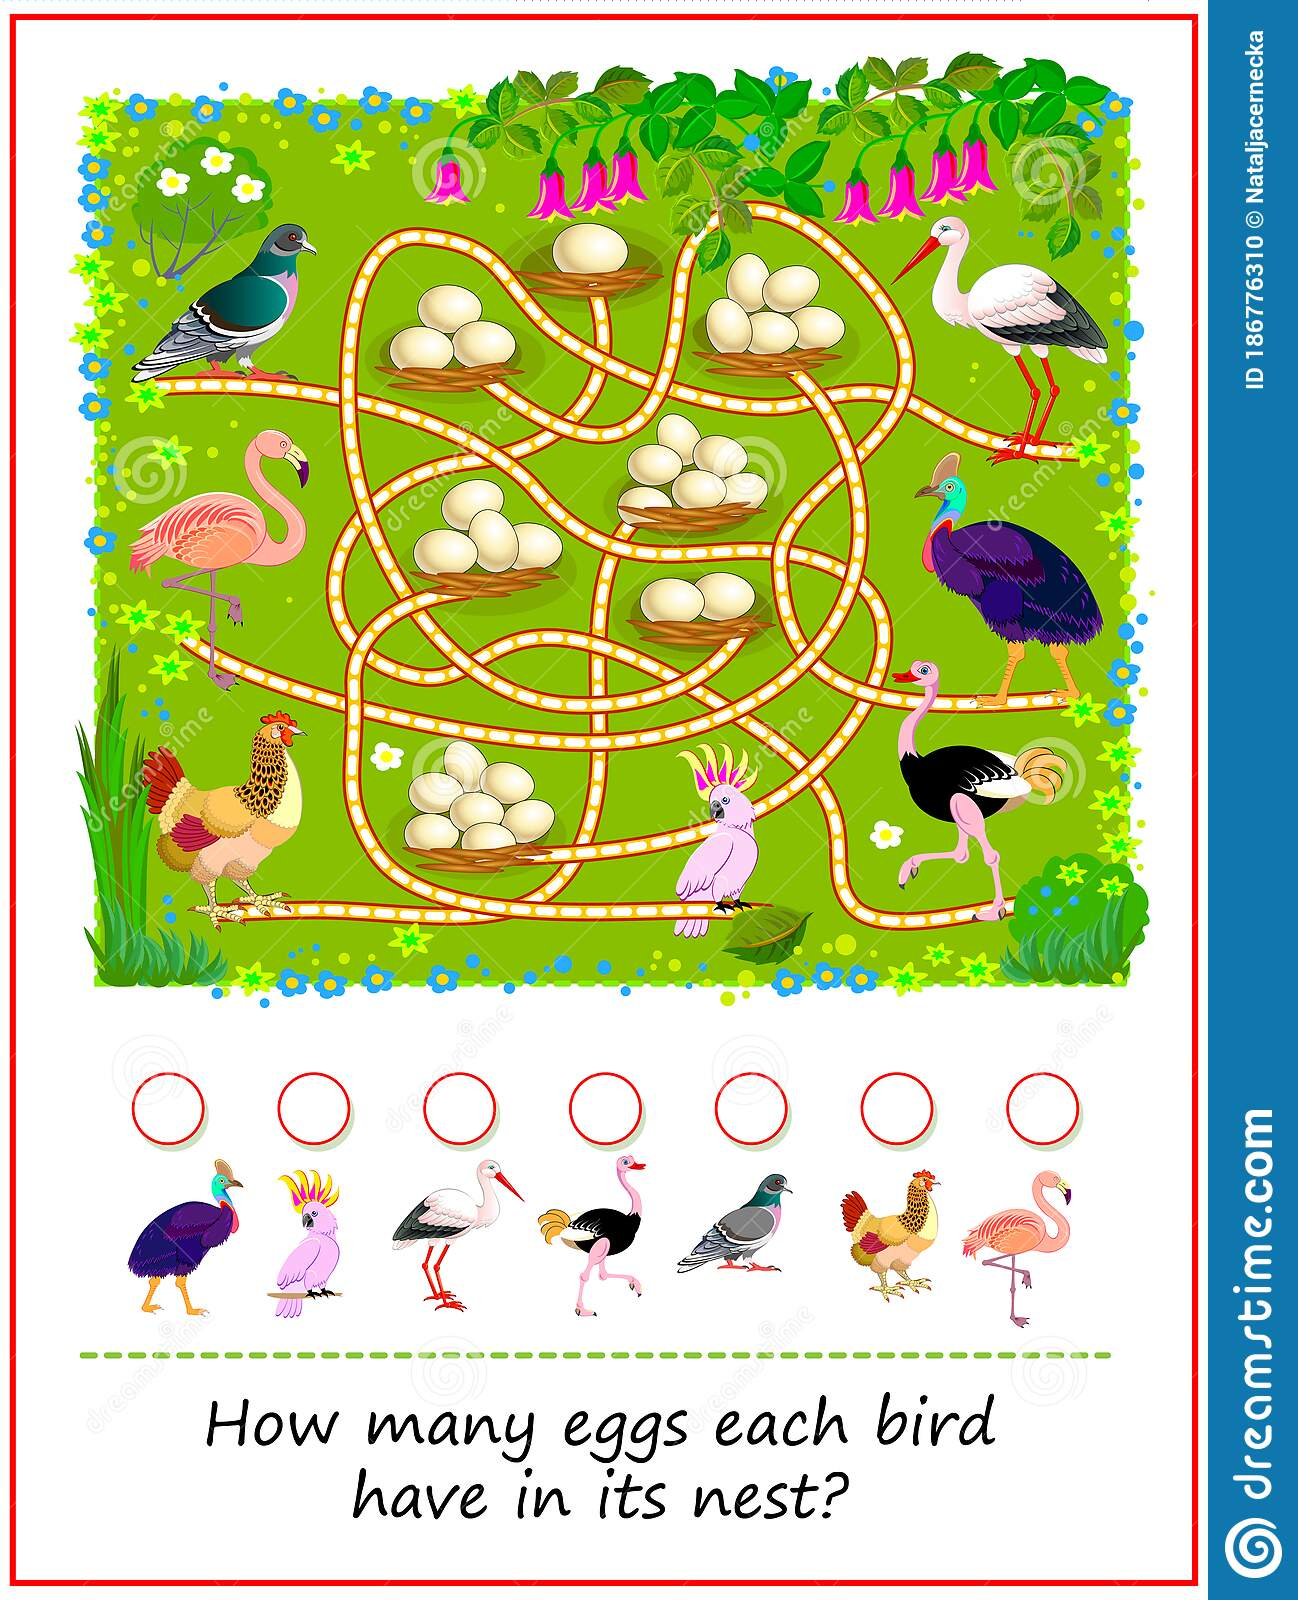 Math Education For Children How Many Eggs Each Bird Have